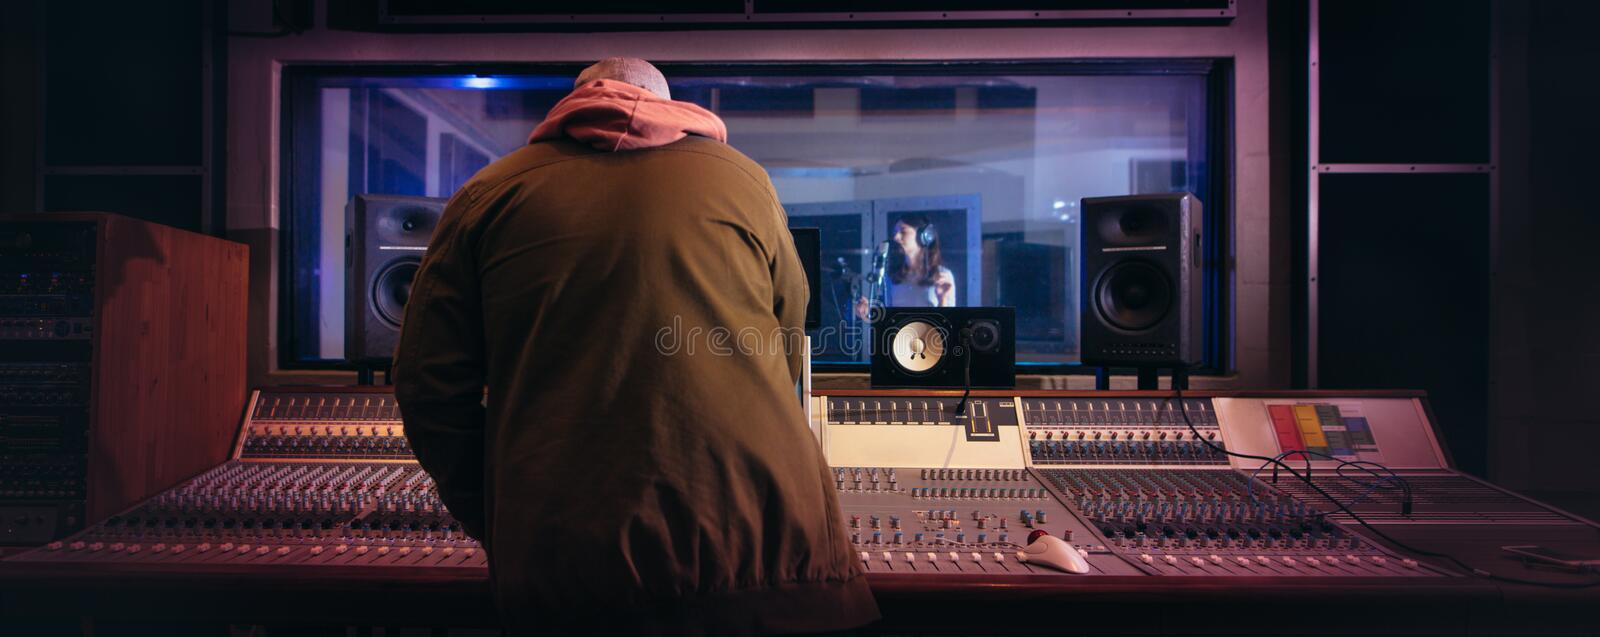 Musicians producing music in professional recording studio royalty free stock photography